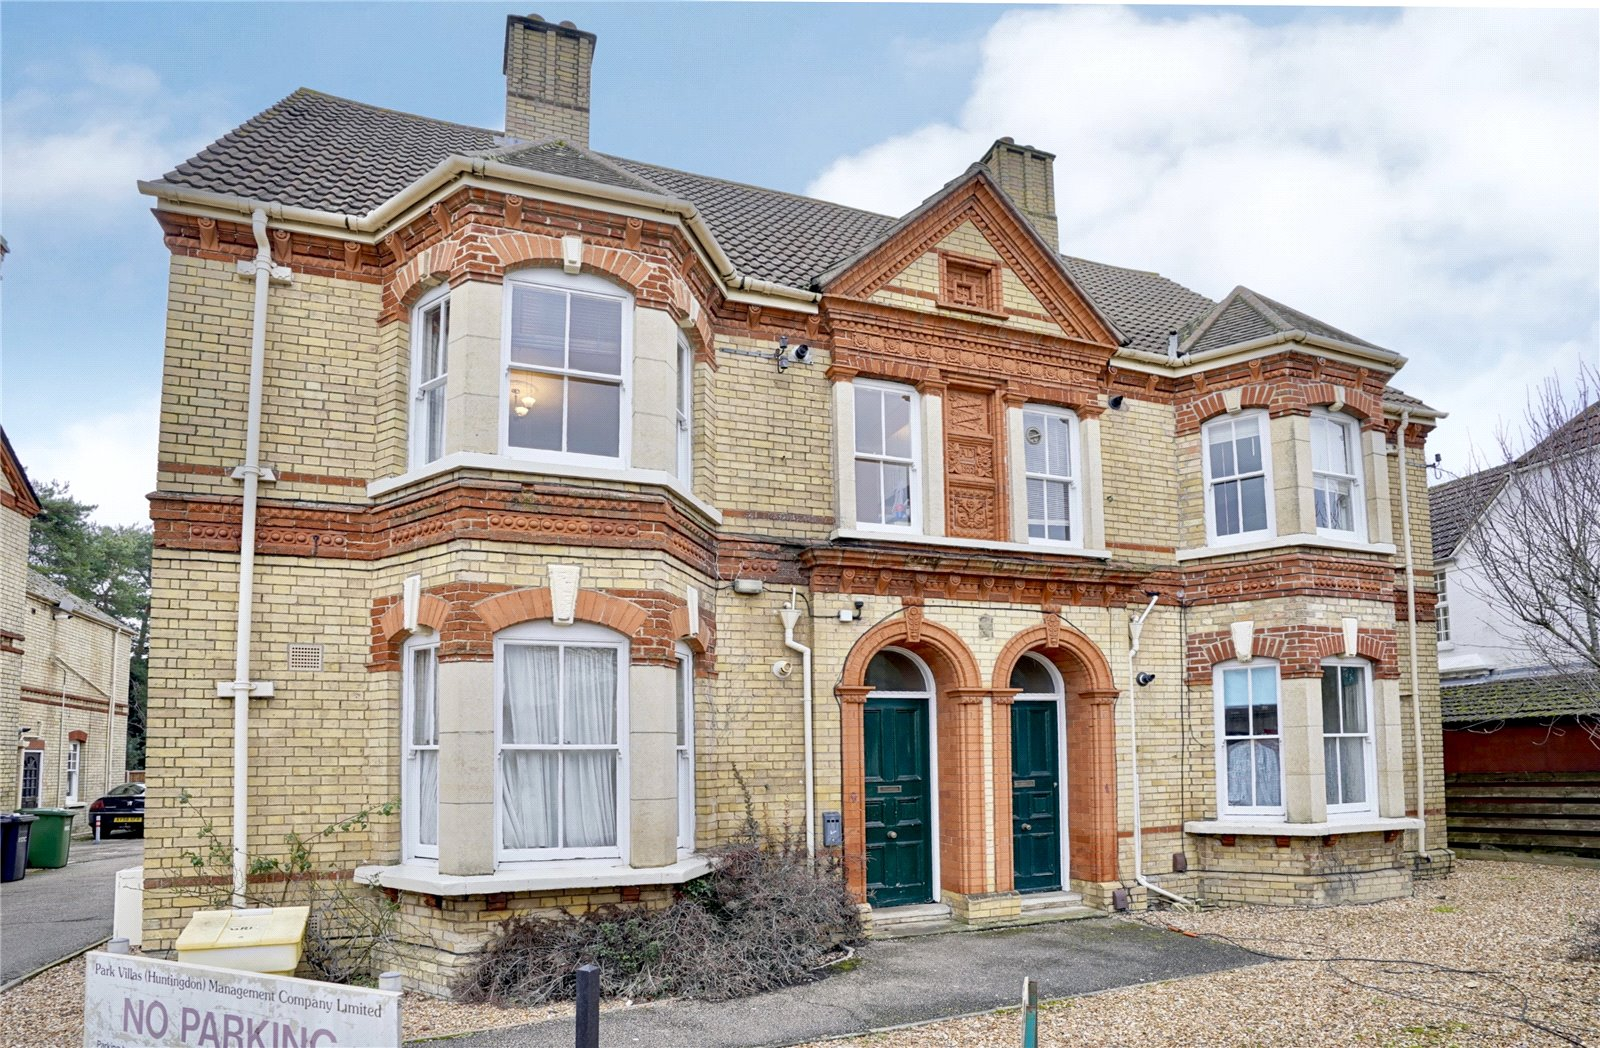 2 bed maisonette for sale in Huntingdon, PE29 3BQ  - Property Image 1